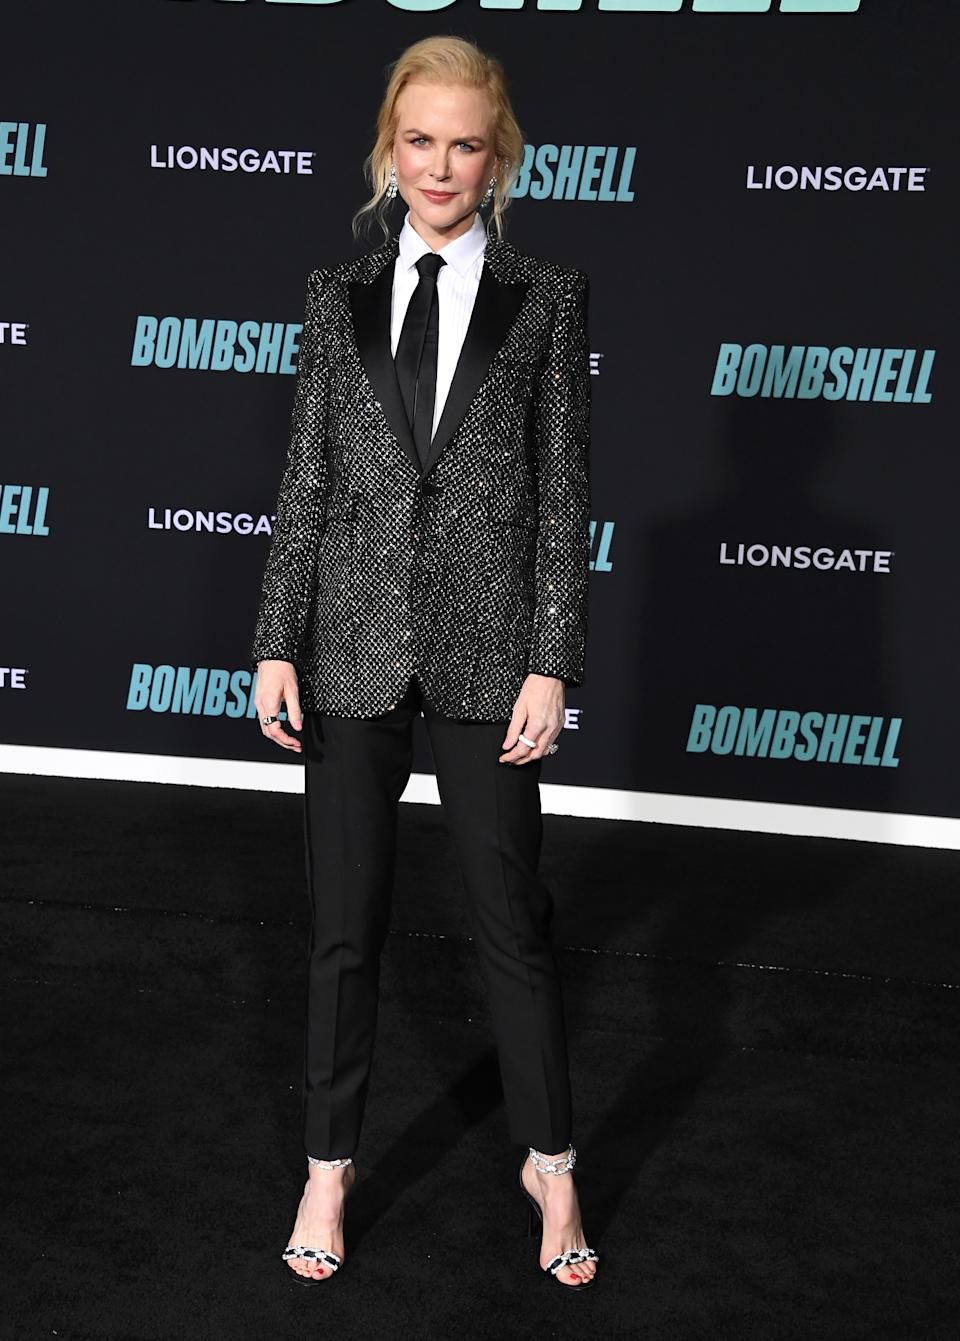 Nicole Kidman pictured wearing her Saint Laurent suit at the 'Bombshell' screening. [Photo: Getty]